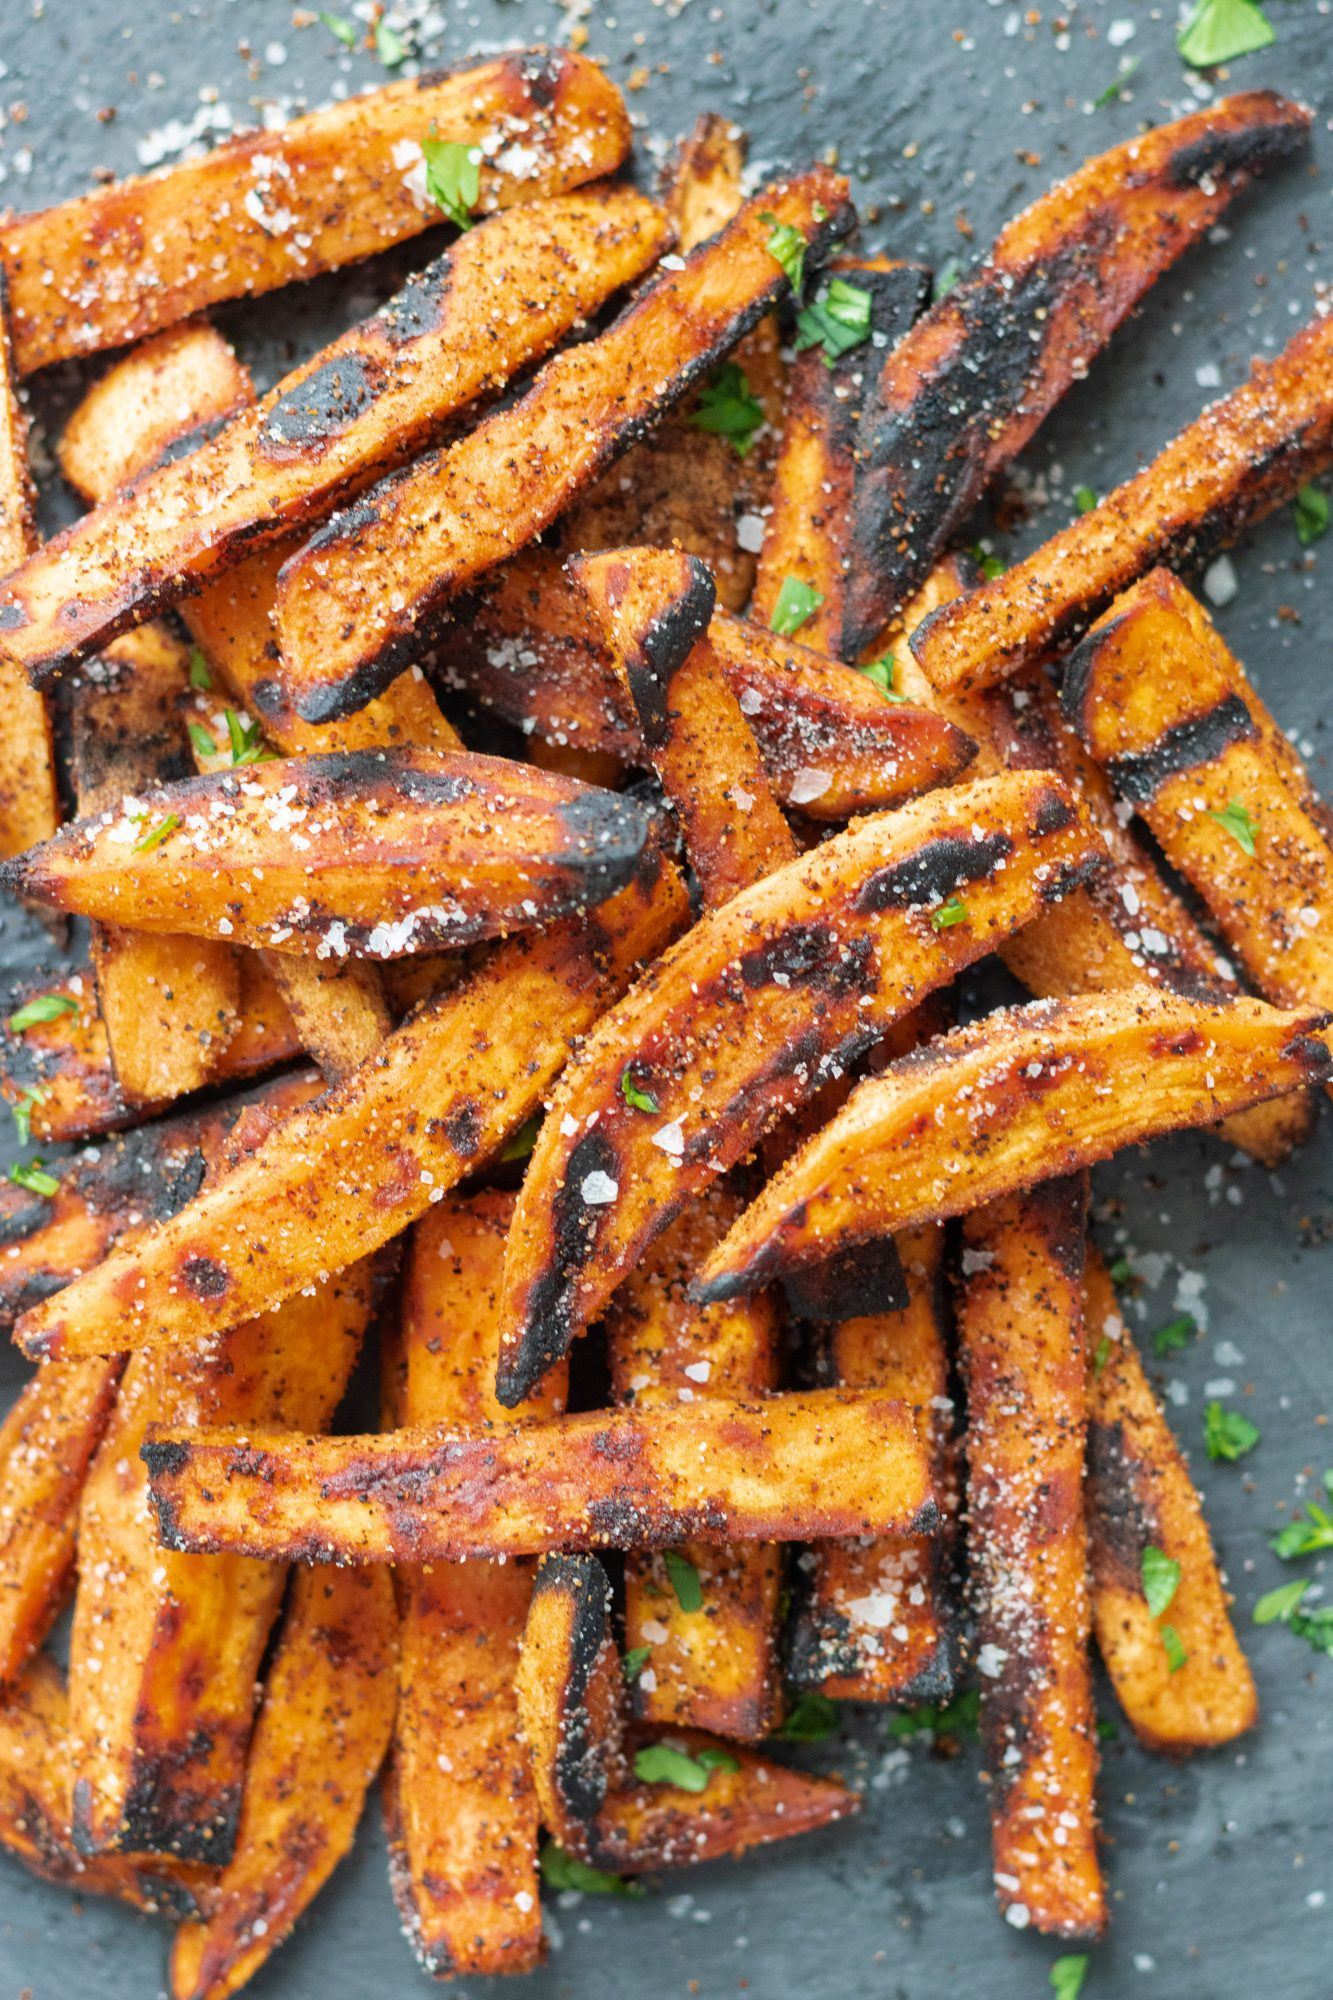 grilled sweet potato fries overhead on black serving platter